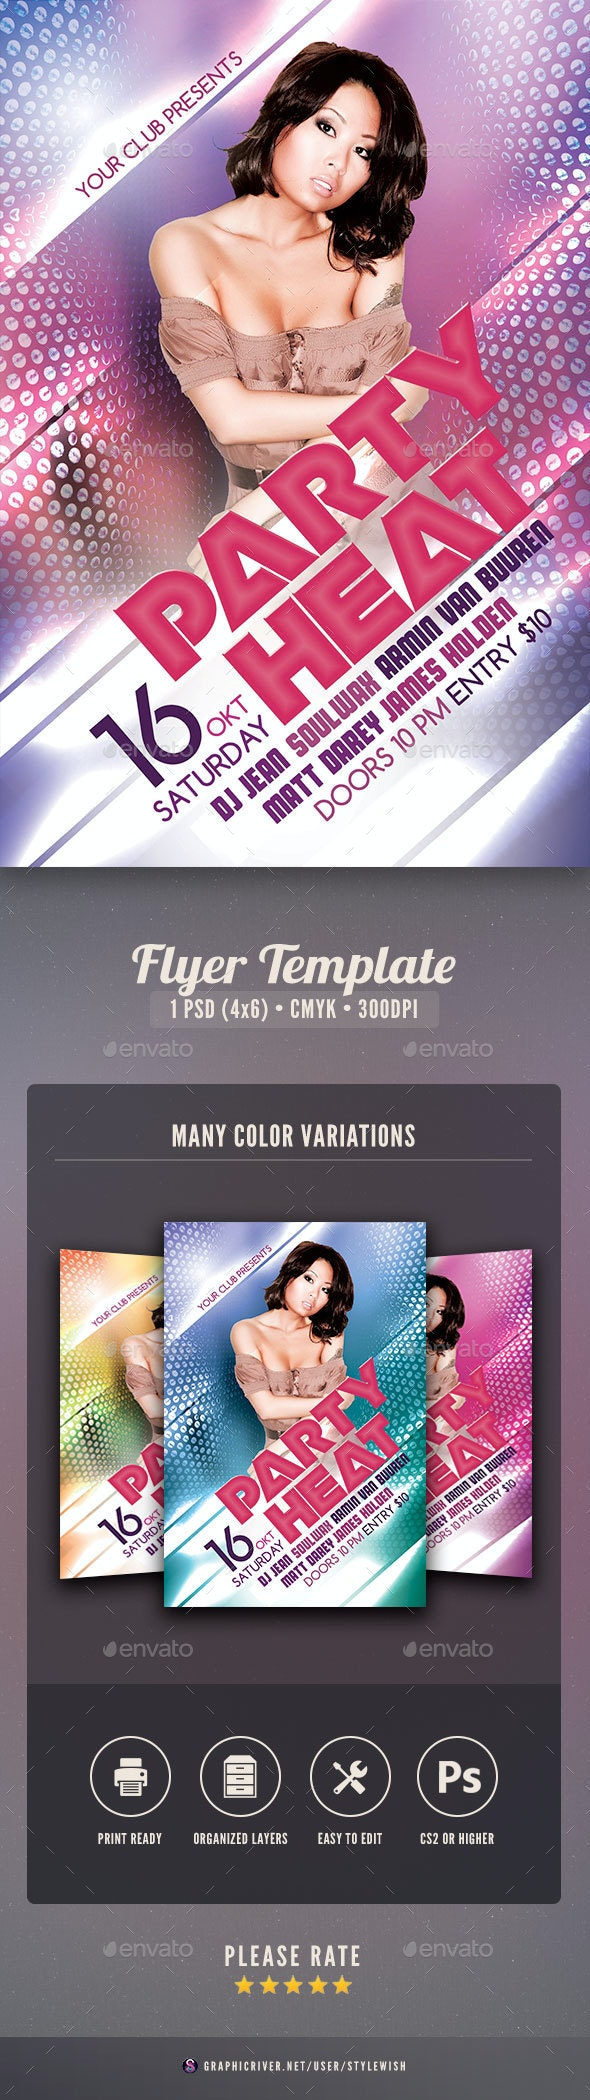 Party Heat Flyer - Clubs & Parties Events